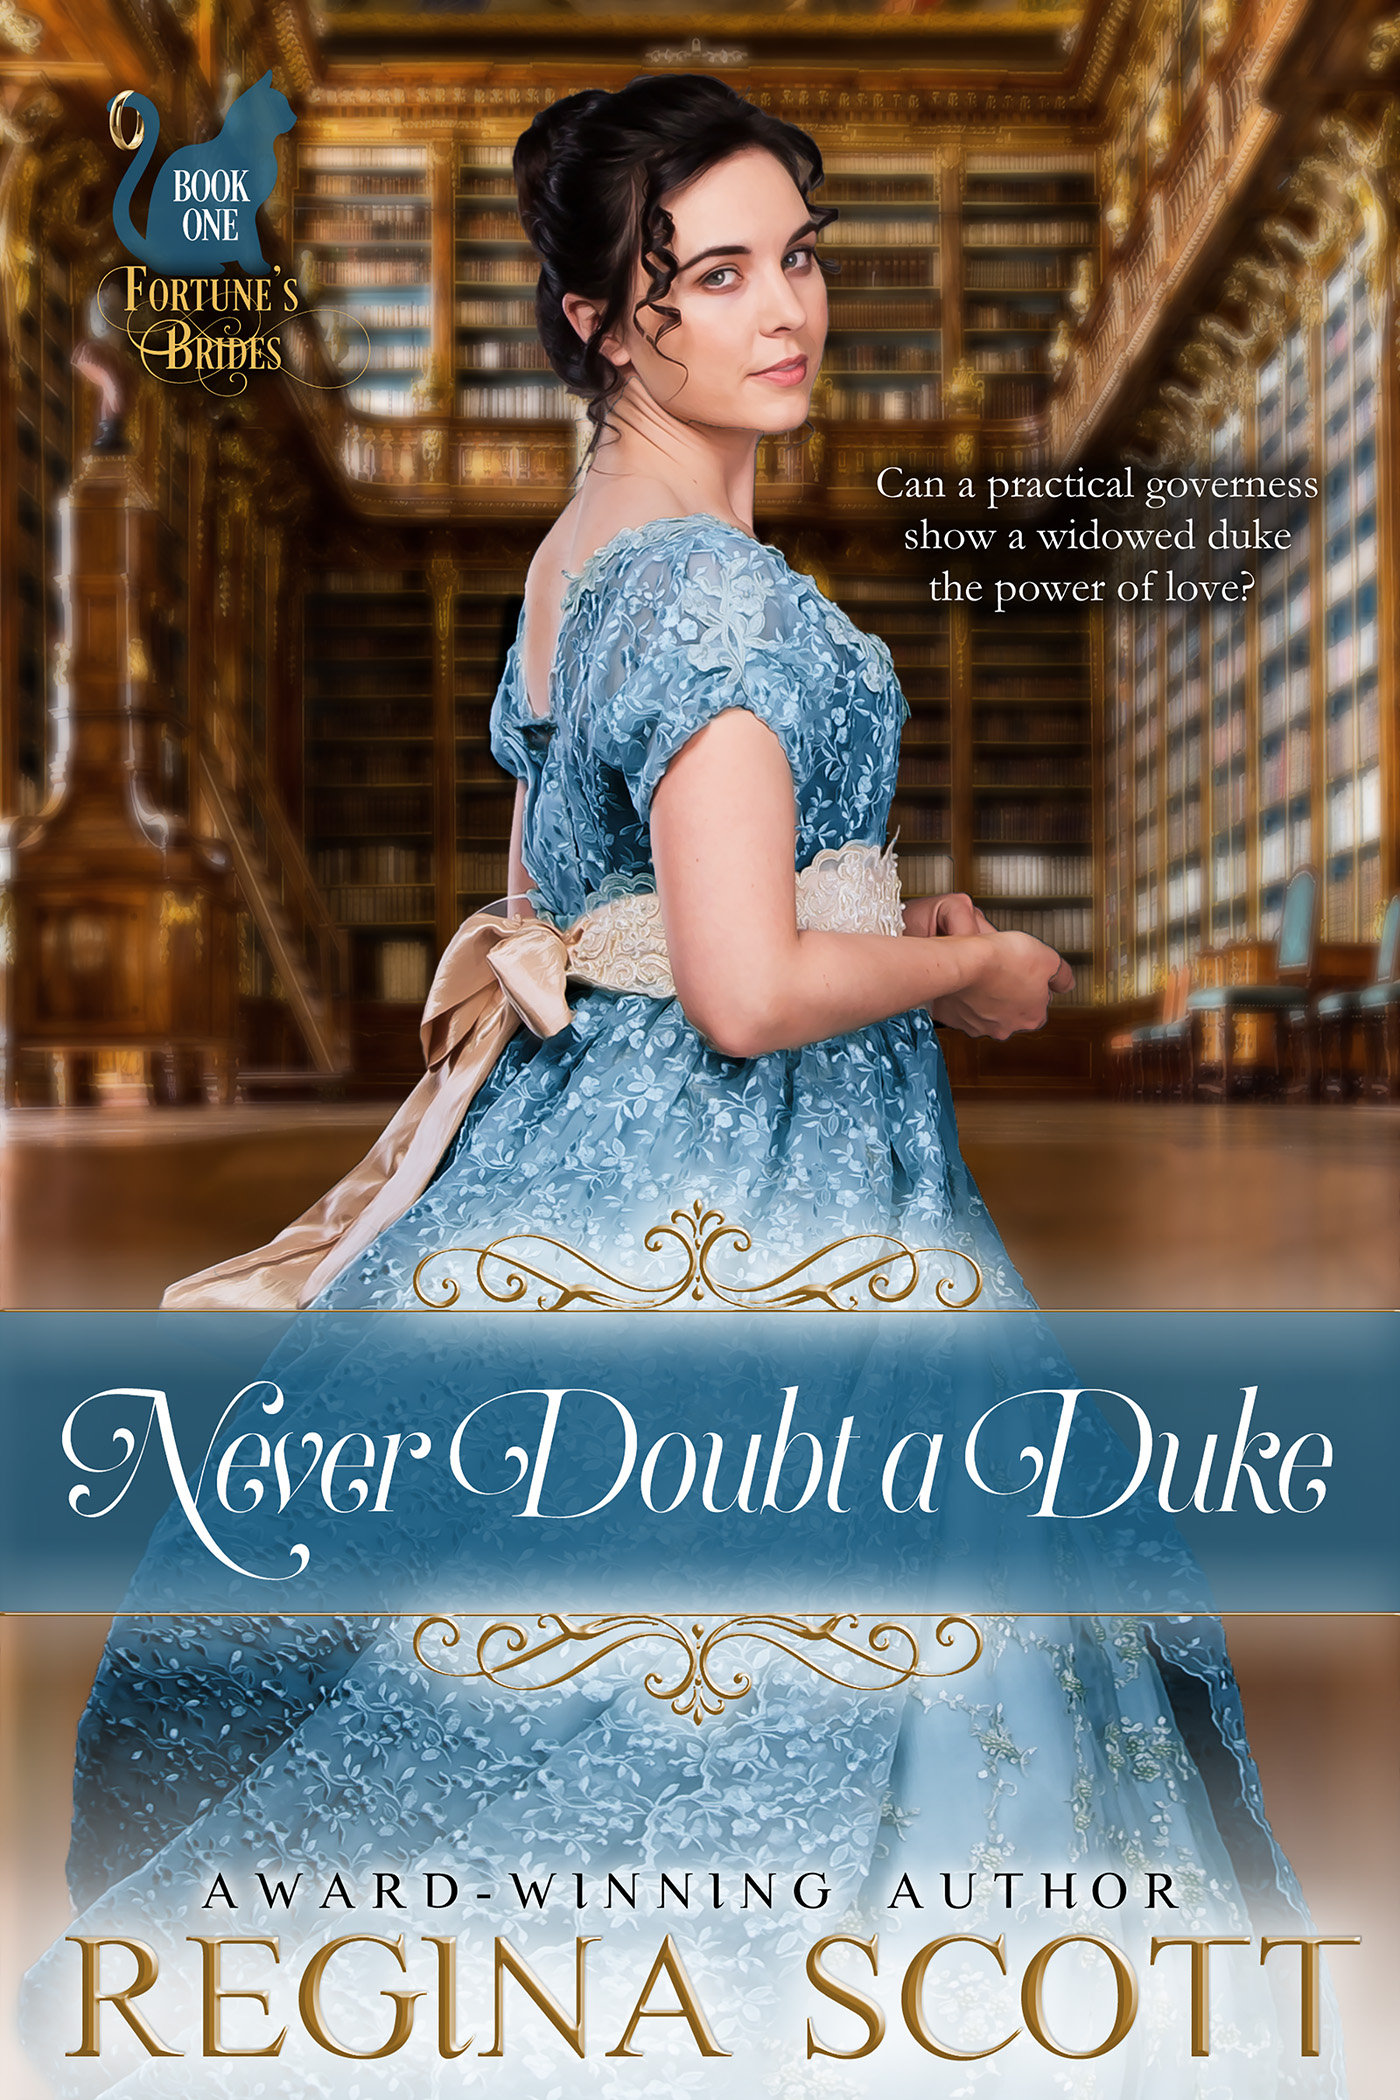 Never Doubt a Duke (sst-cdxxvii)